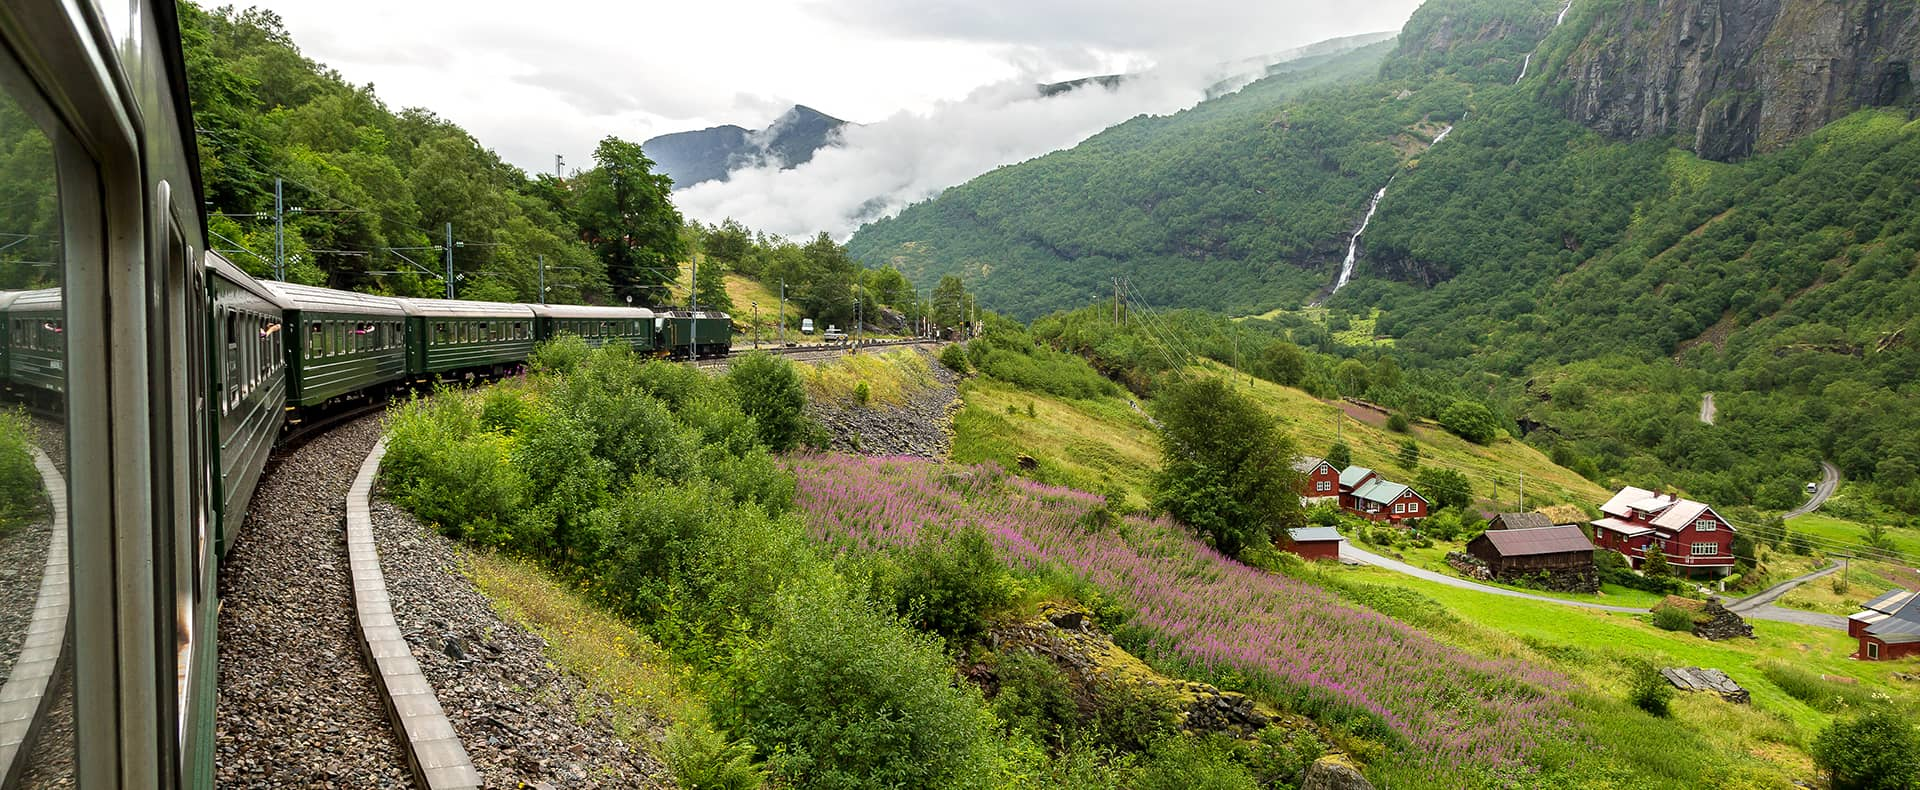 Flamsbana Railway, Flam, Norway